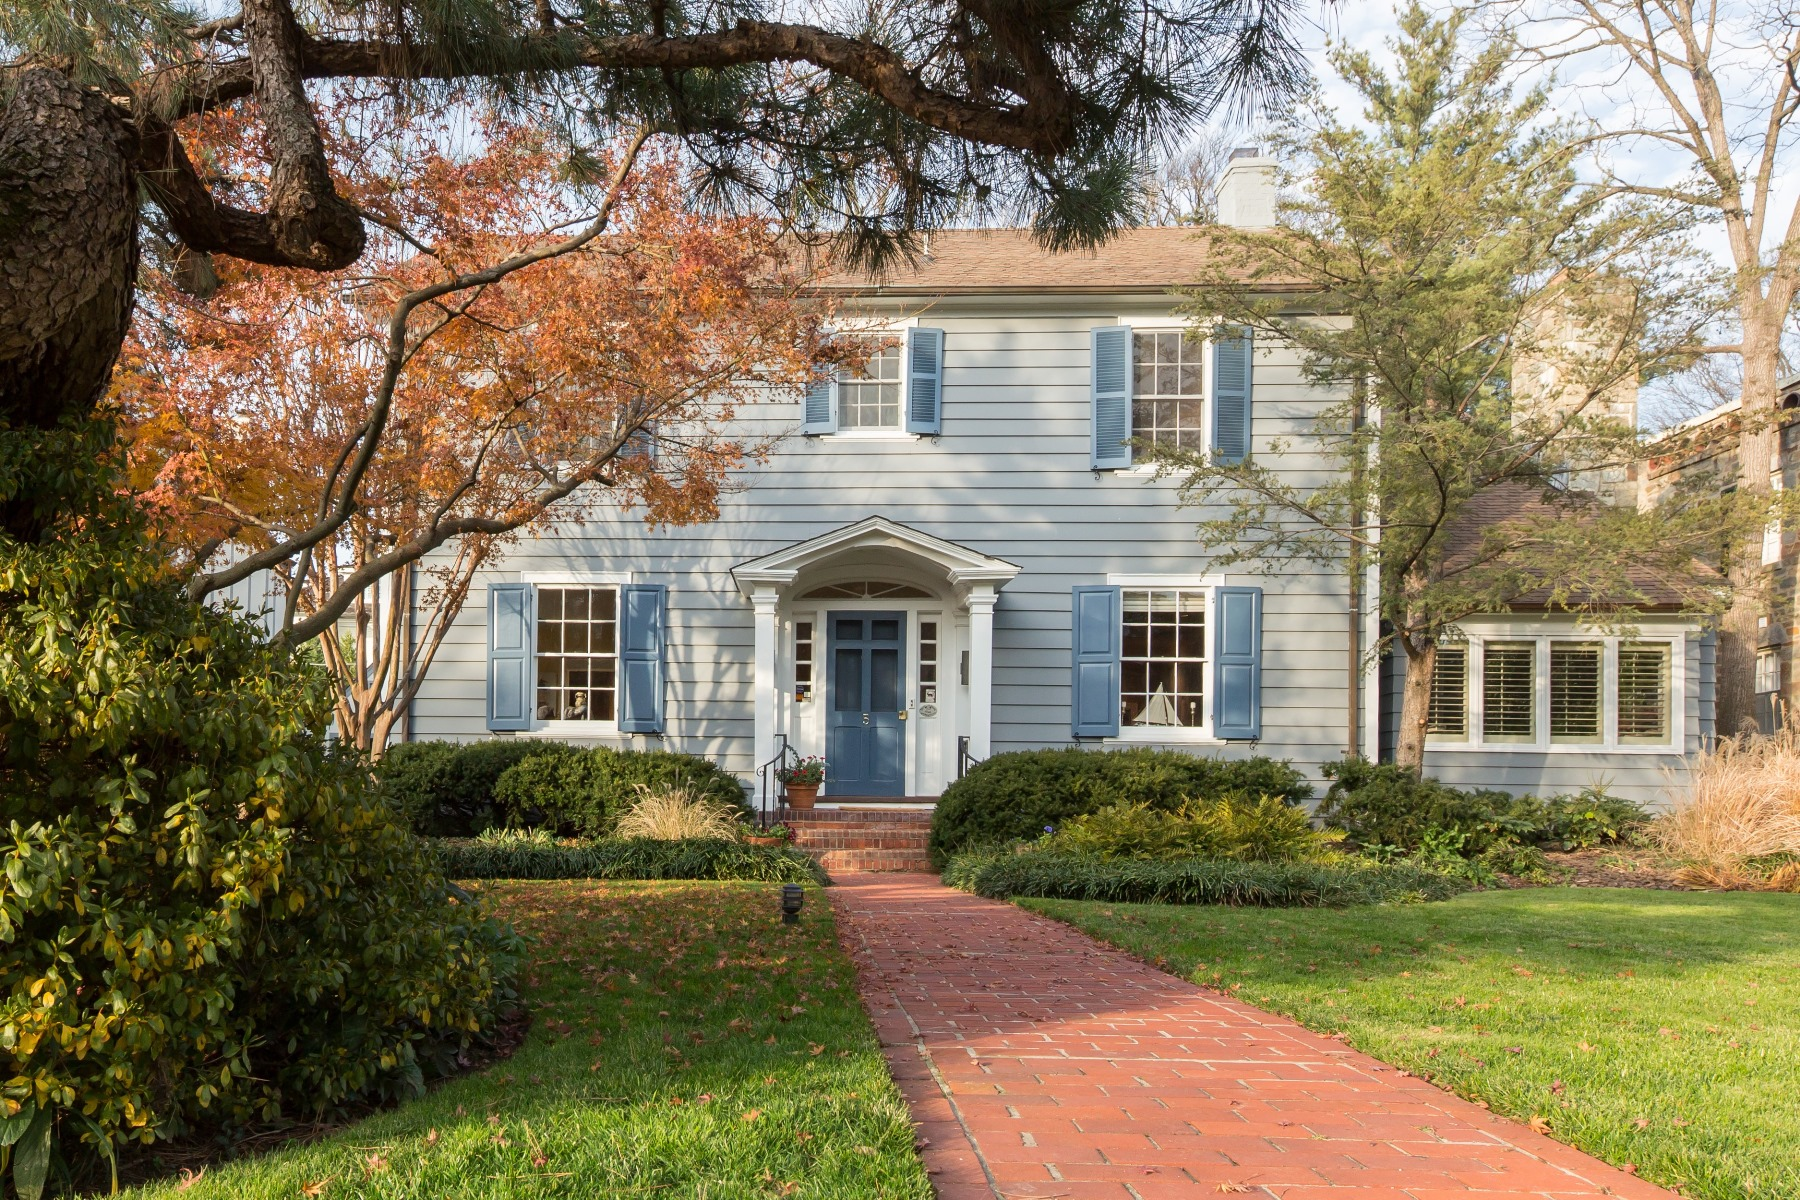 Single Family Home for Sale at 5 Primrose Street, Chevy Chase Chevy Chase, Maryland 20815 United States